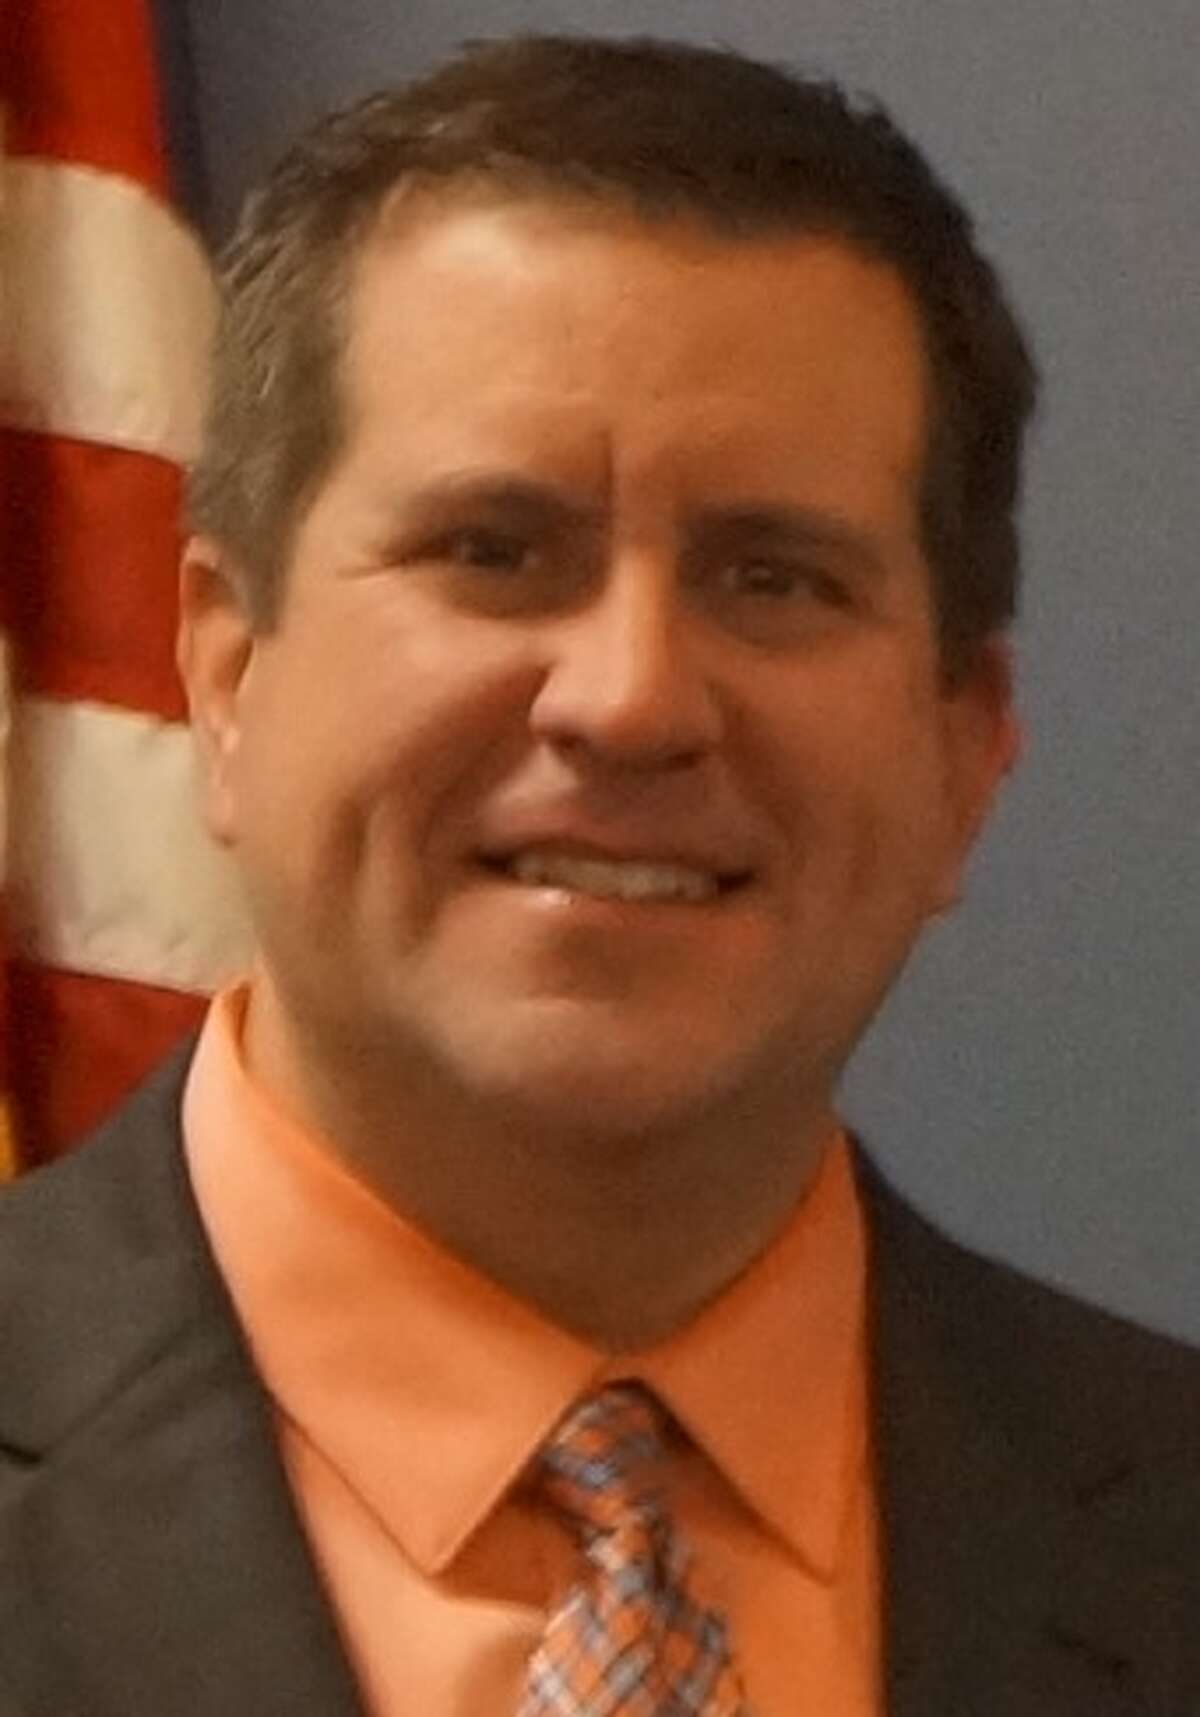 Friendswood ISD plans to progressively introduce standards-based grading, adding one grade per year until fifth graders are put on that standard in the 2025-2026 school year, board president Tony Hopkins says.